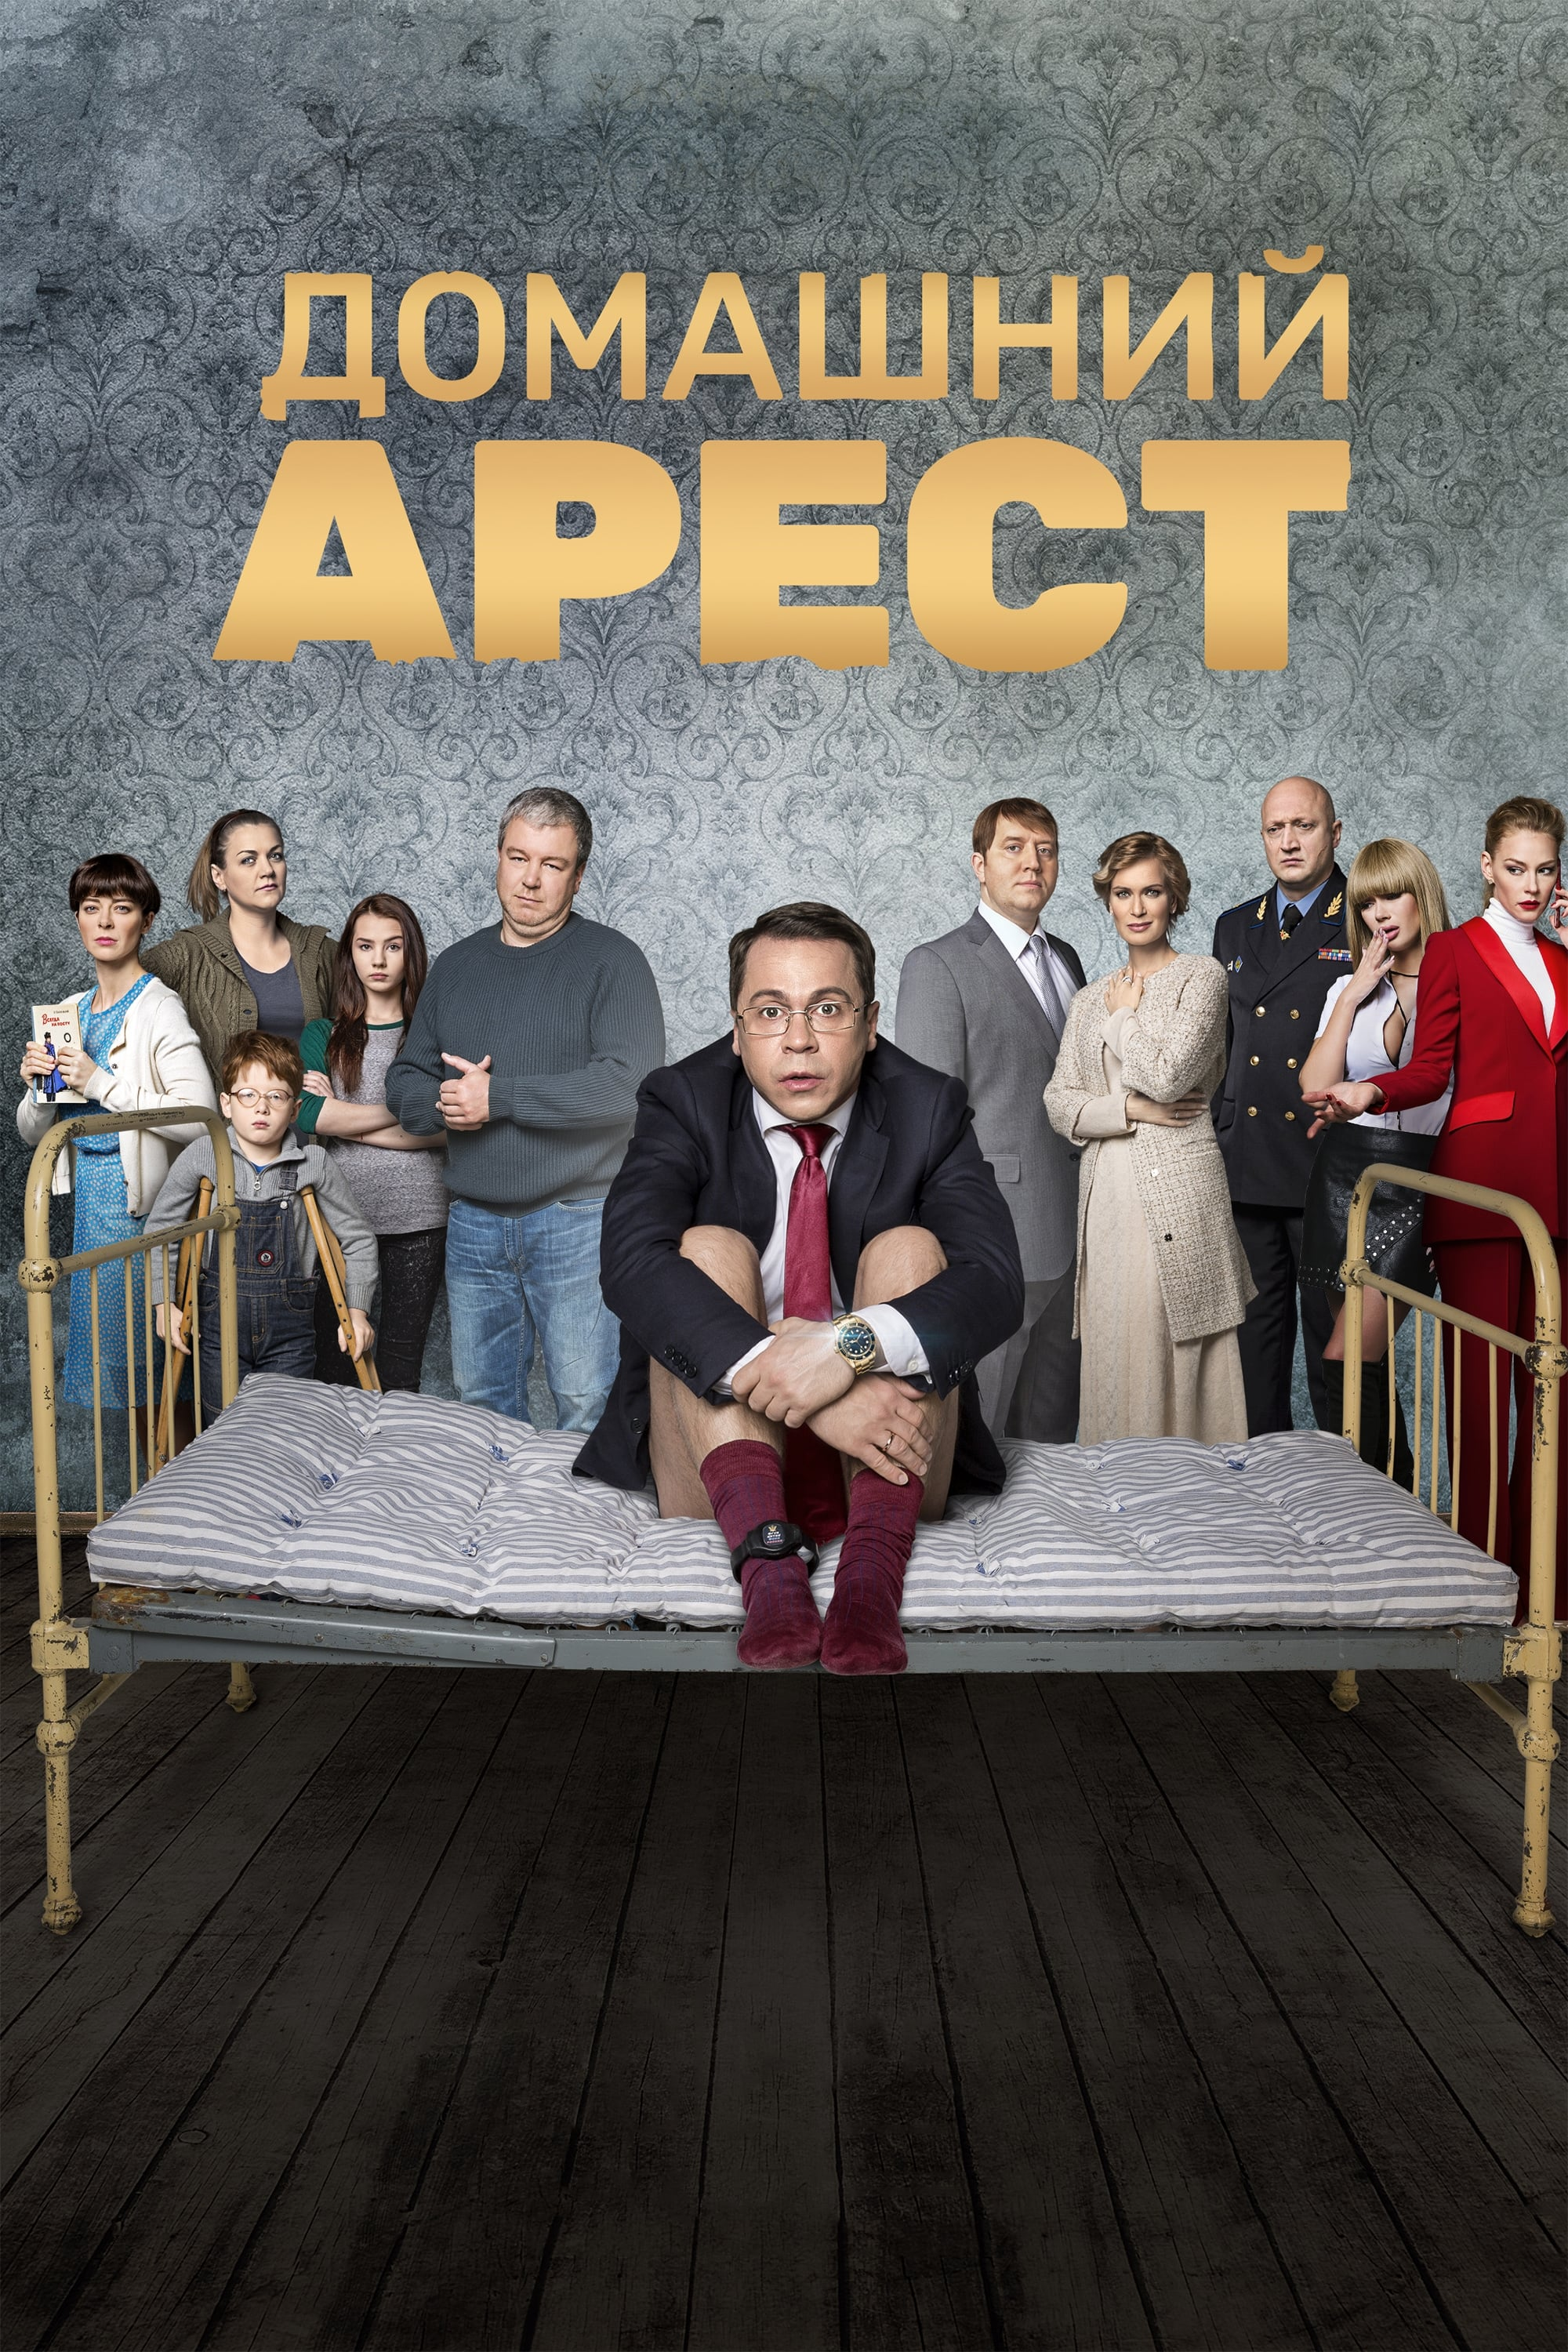 Домашний арест TV Shows About Corrupt Politician